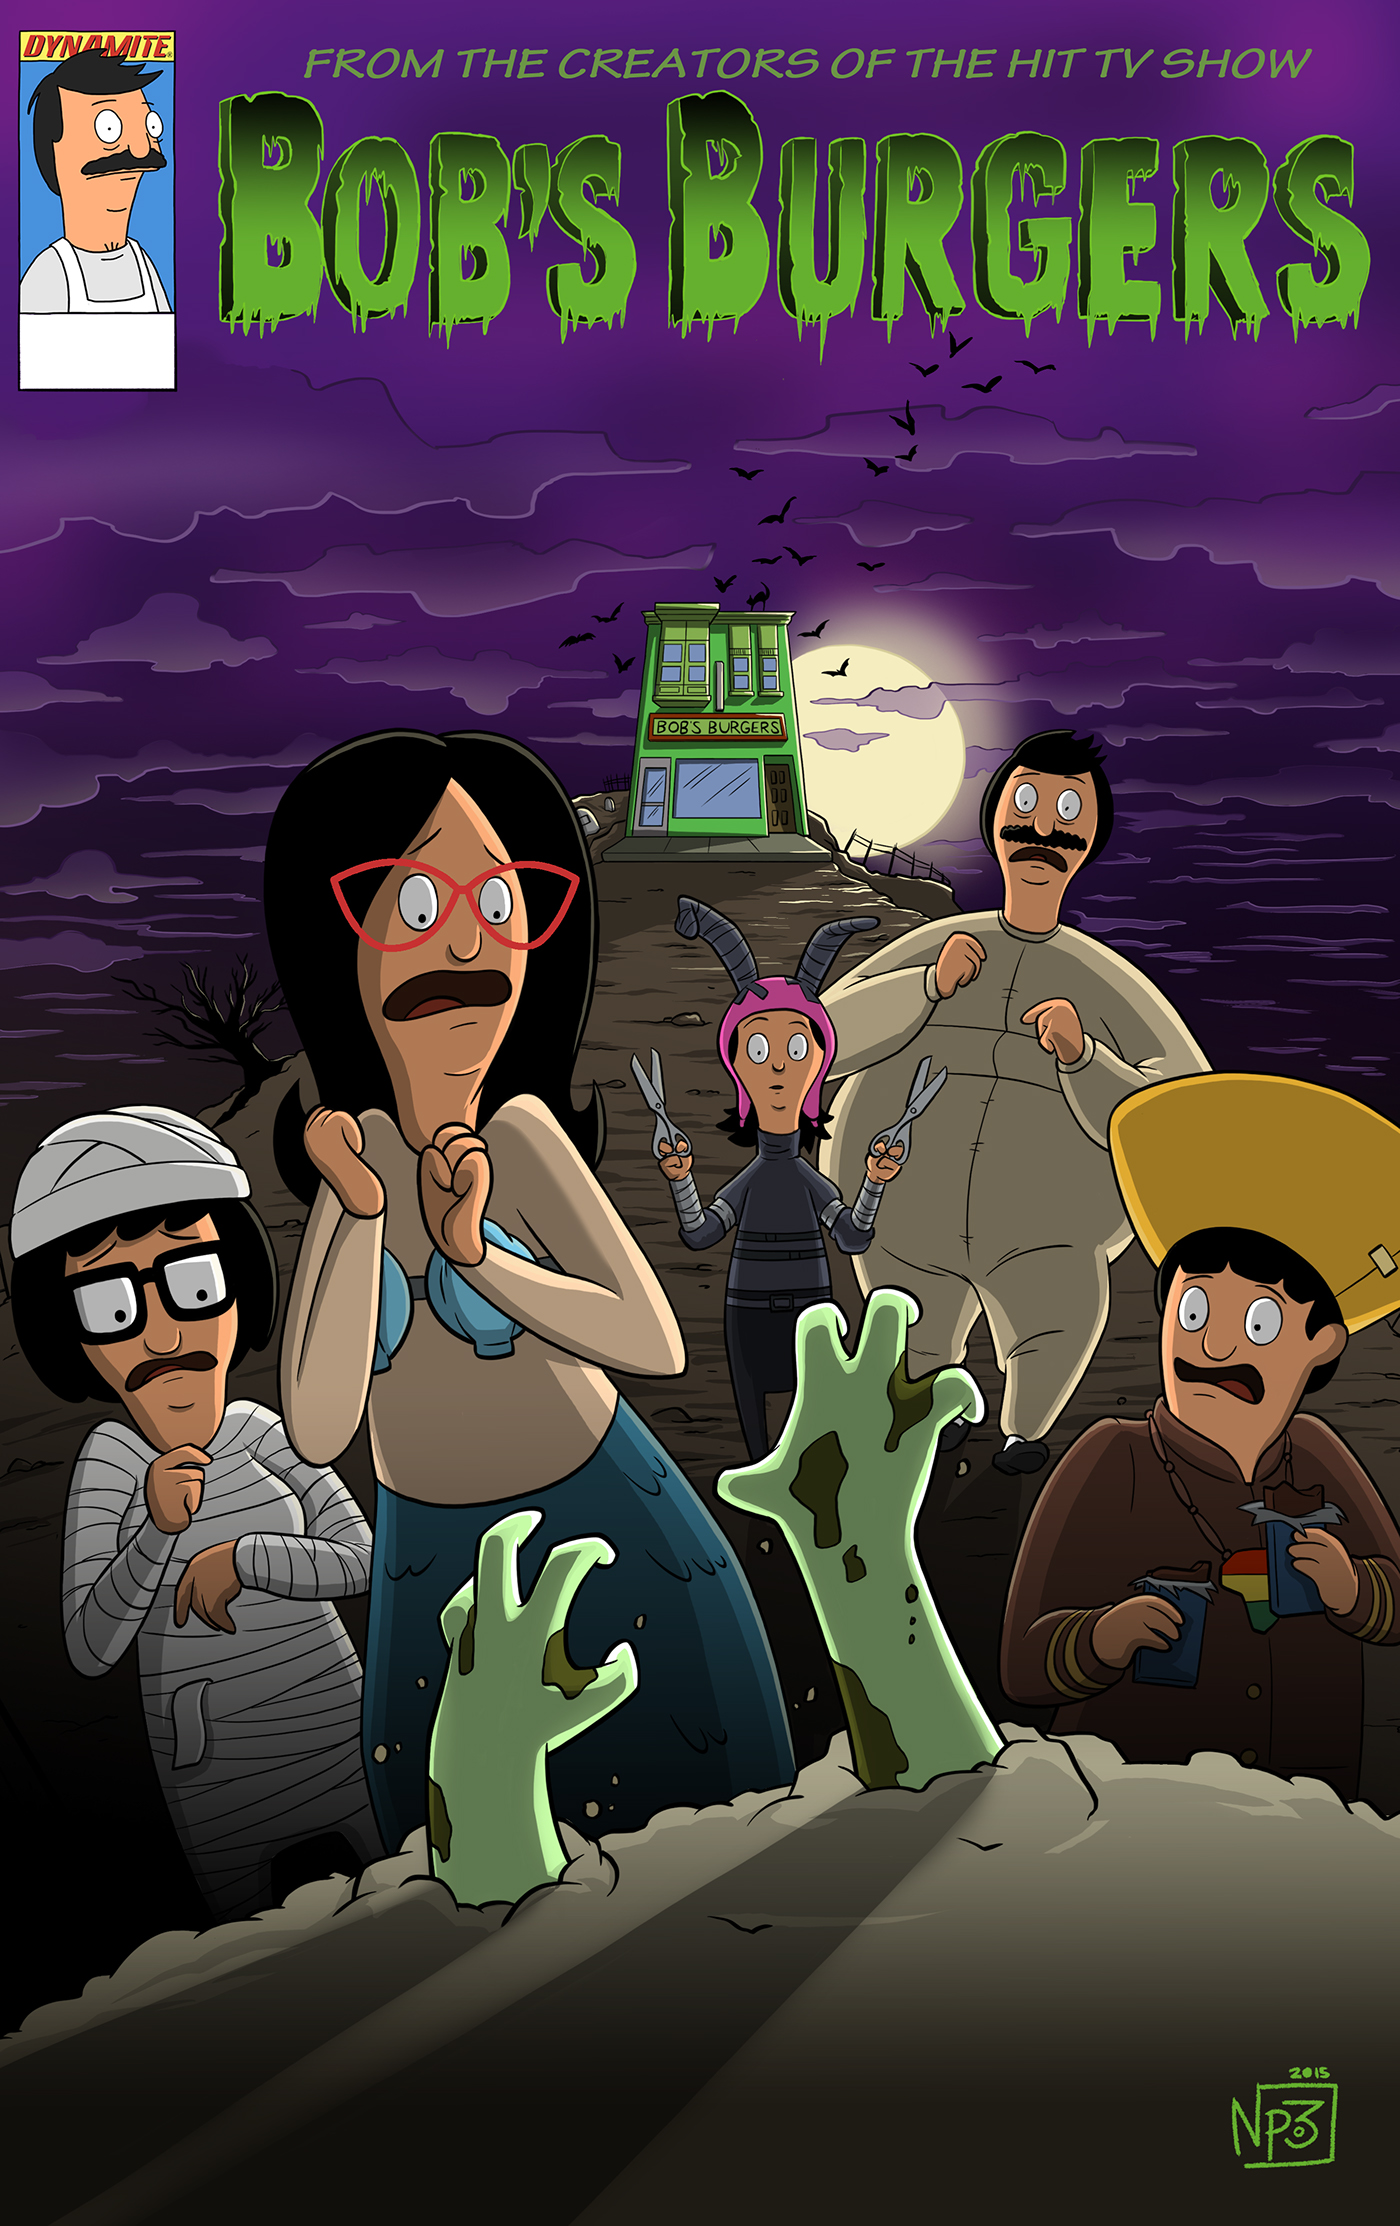 bobs burgers halloween comic variant cover by me on behance